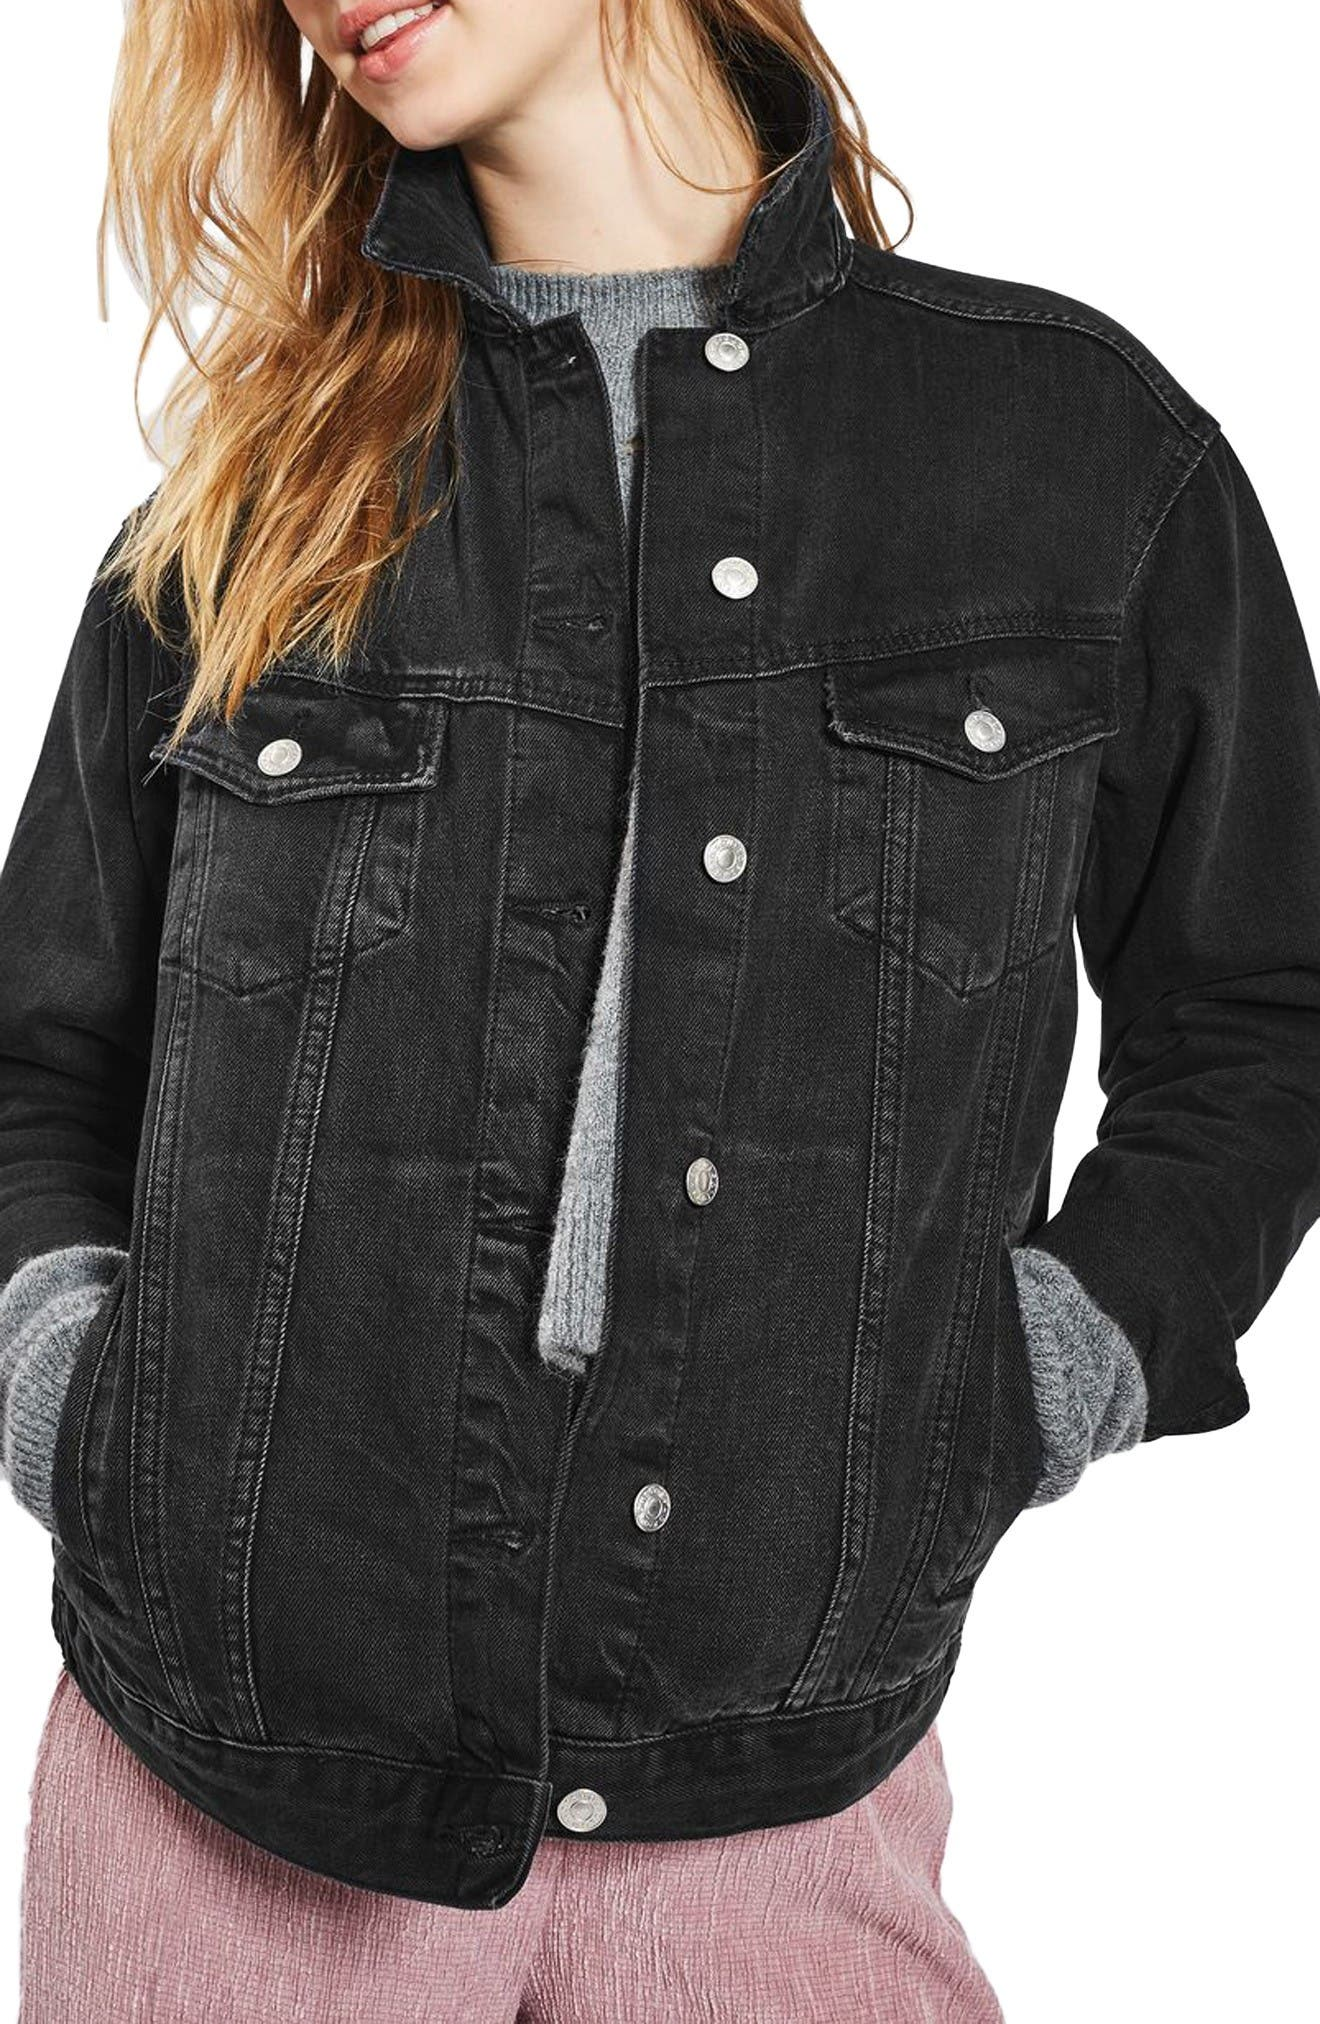 Women's Black Coats & Jackets | Nordstrom